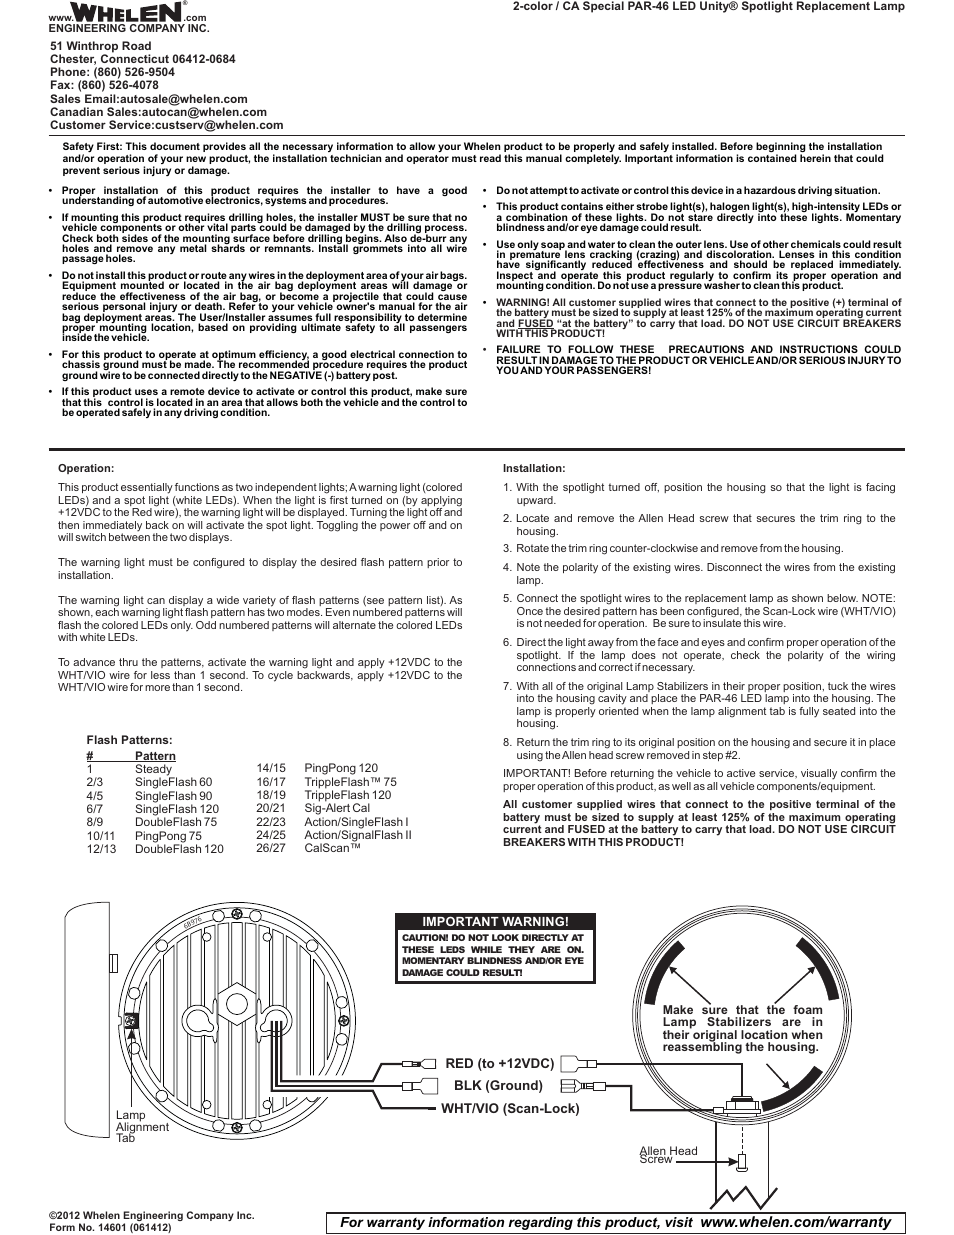 Whelen P46s2x User Manual 1 Page Unity Spotlight Wiring Diagram